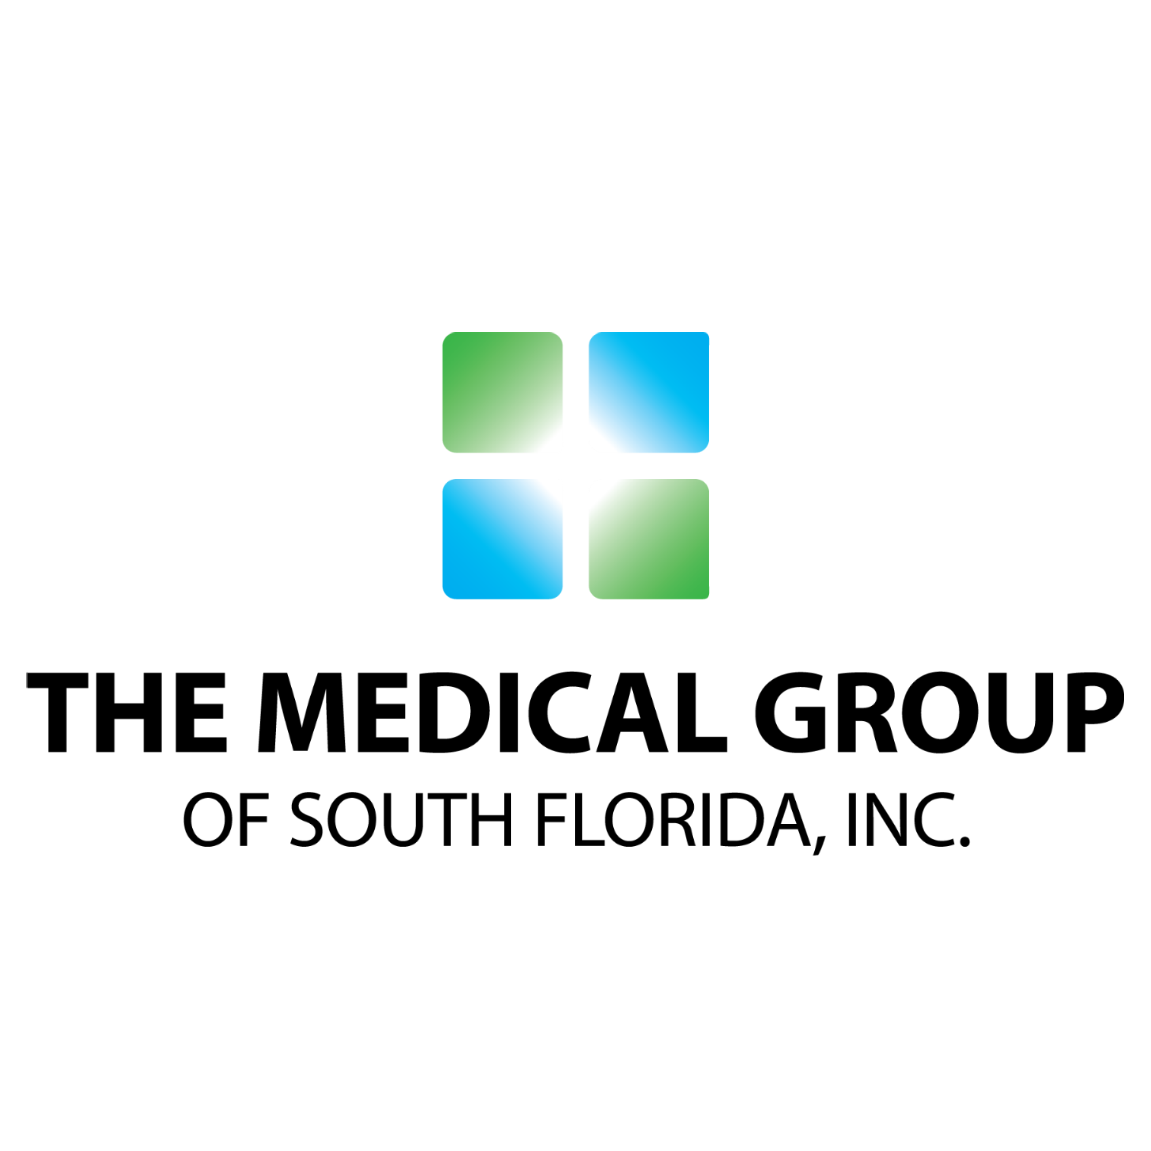 The Medical Group of South Florida